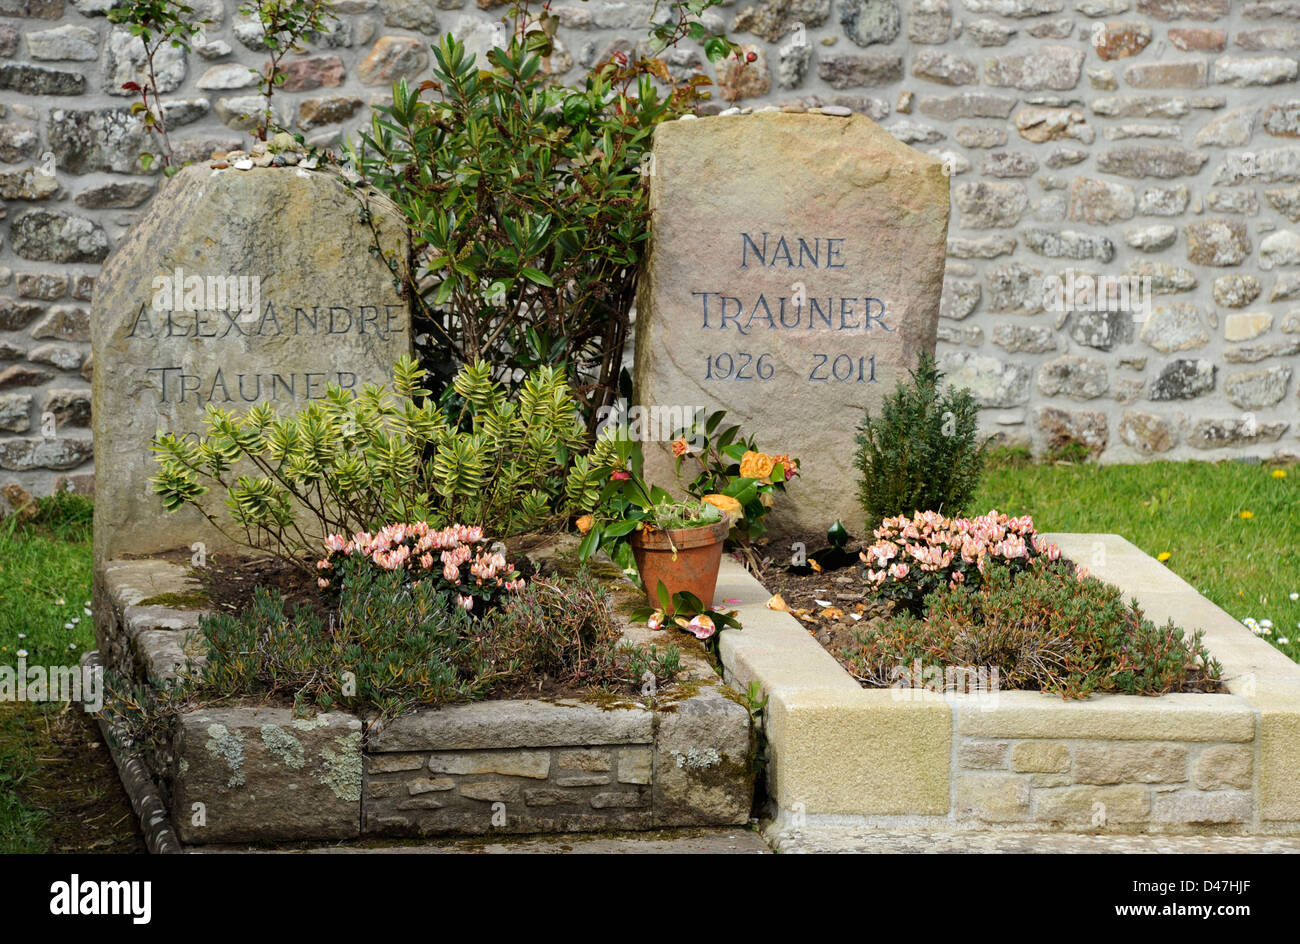 Jacques Prevert,poet and Alexandre Trauner movie decorator,grave,Omonville-la-Petite,Manche,Basse-Normandie,Cotentin,France - Stock Image